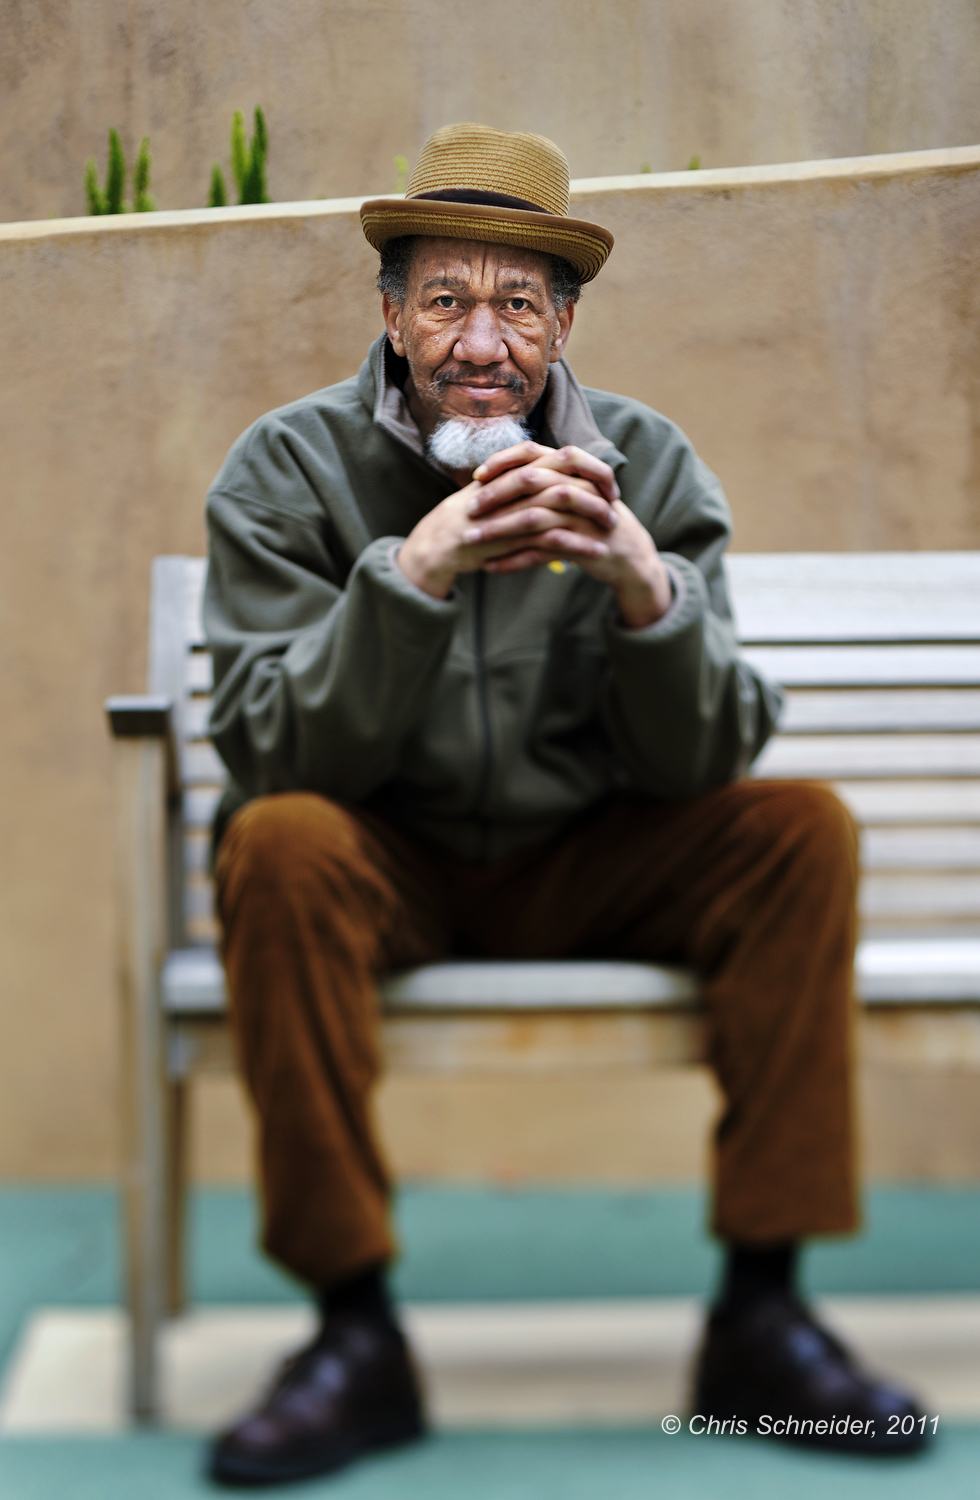 A portrait of a Mercy Housing resident outside his home in San Francisco for the Mercy Housing annual report.